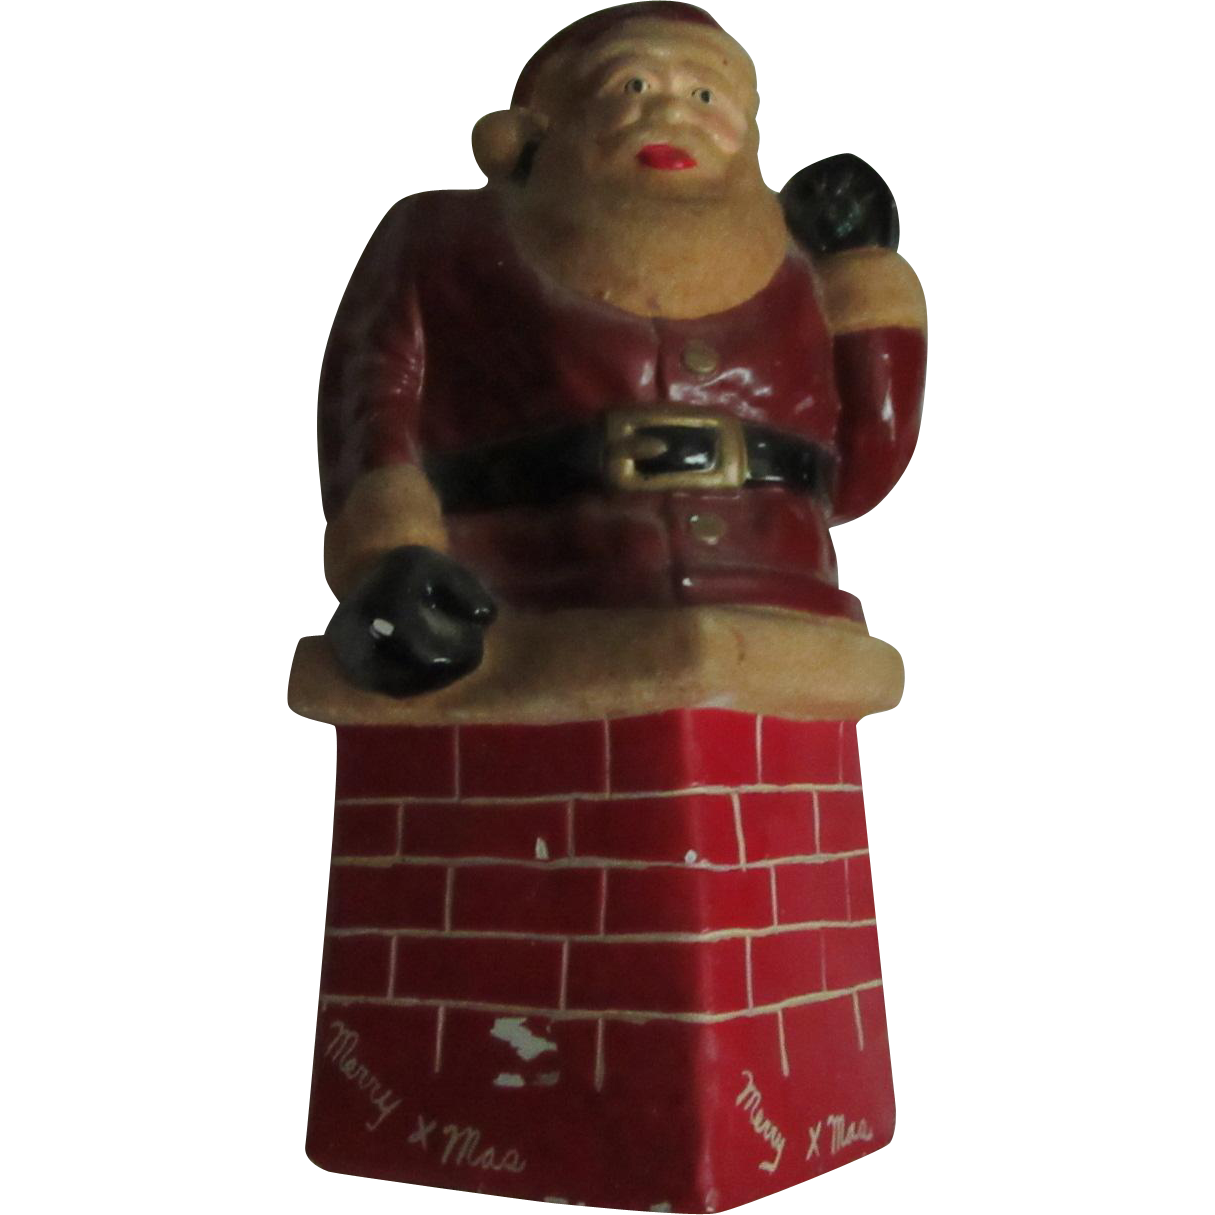 Old Santa Claus Saint Nicholas Bank Statue Christmas Figure